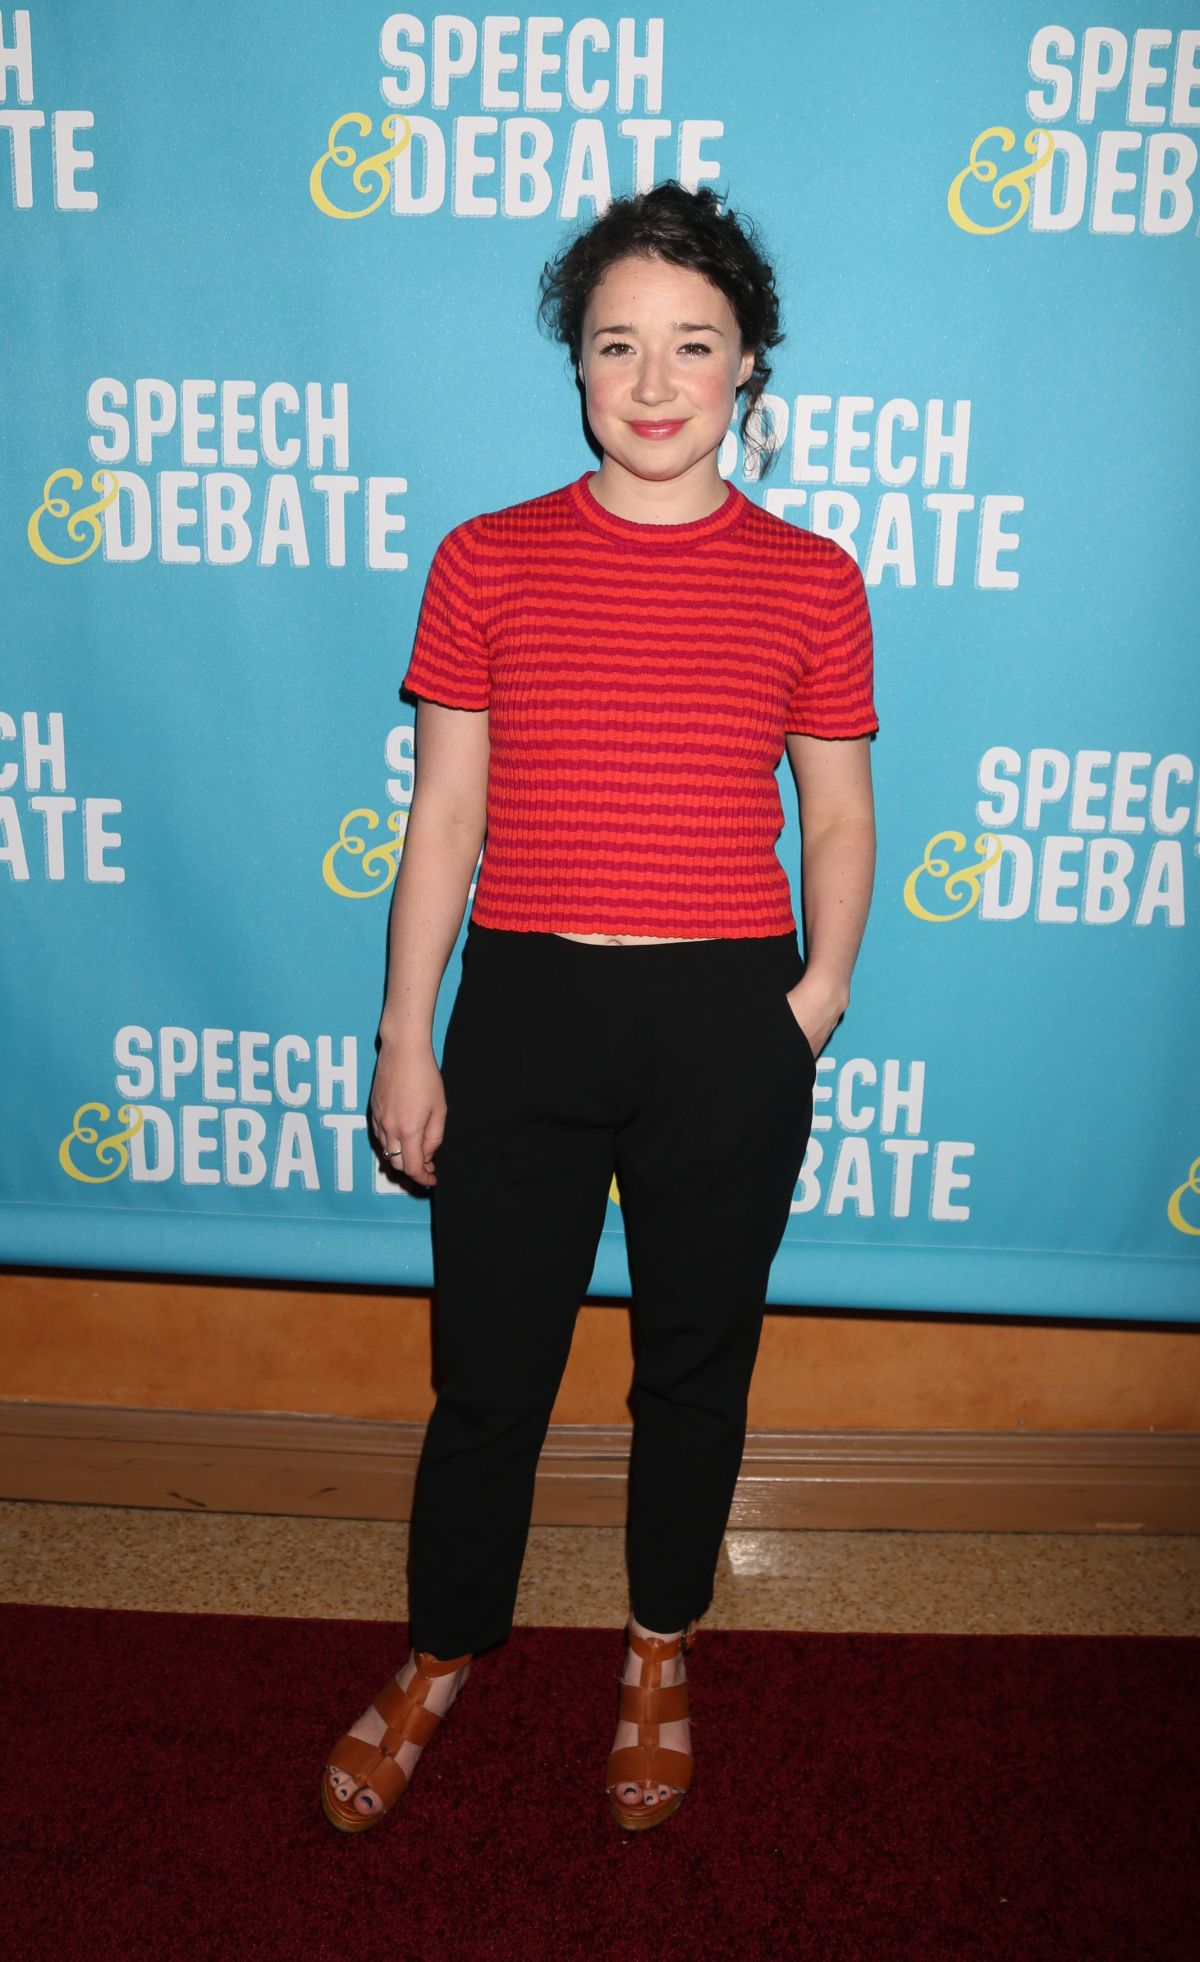 SARAH STEELE at Speech & Debate Premiere in New York 04/02/2017